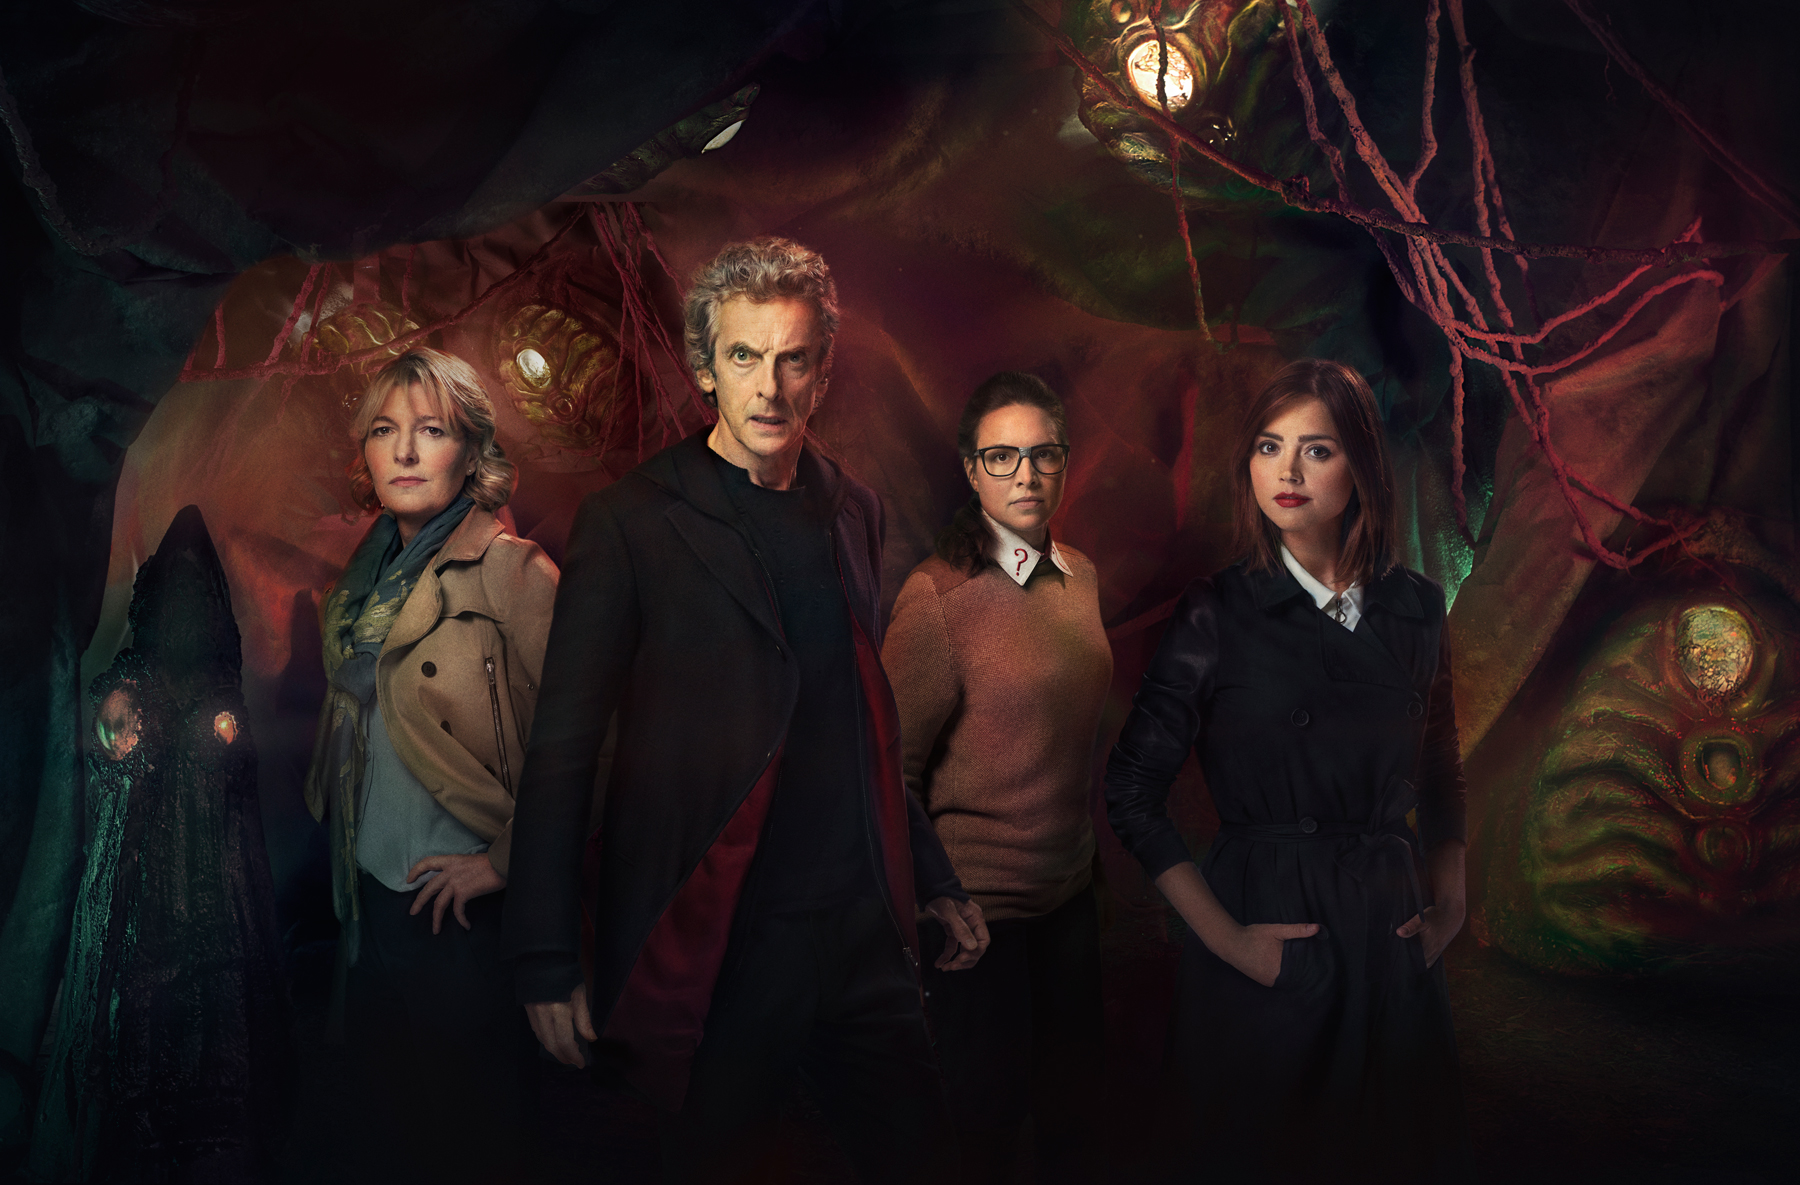 Review: 'Doctor Who' Season 9 Episode 8, 'The Zygon